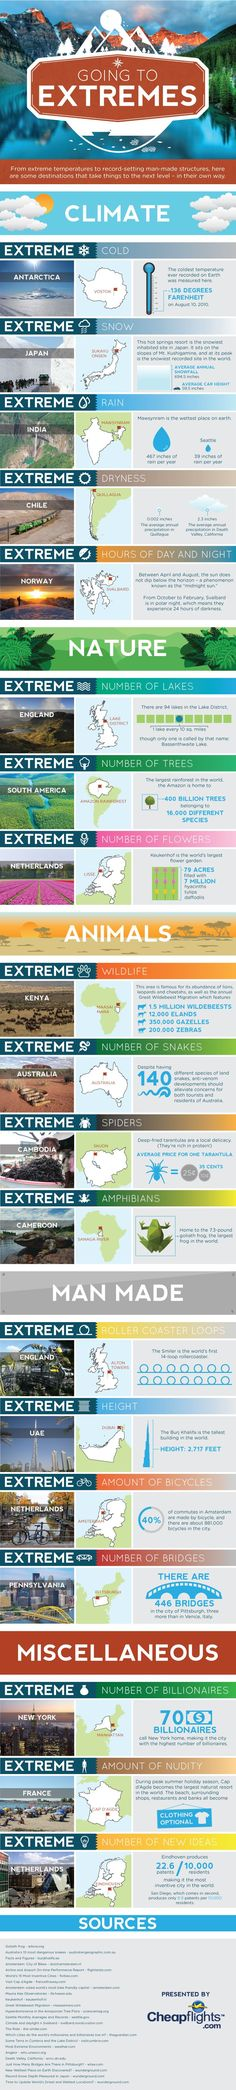 Going To Extremes #Infographic #Travel #infografía